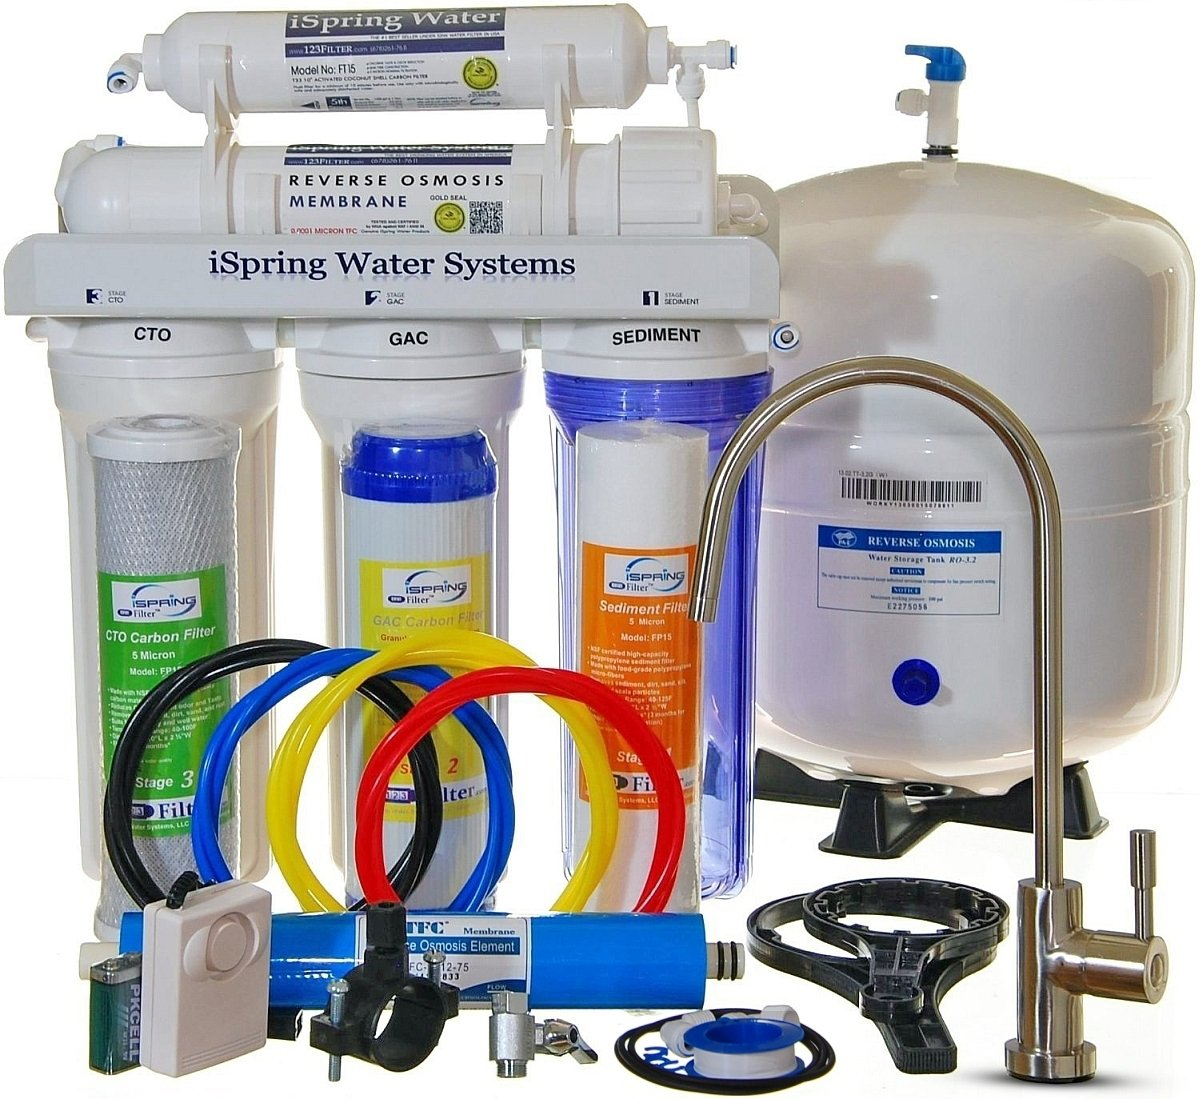 iSpring RCC7 Reverse Osmosis Water Filter System Review